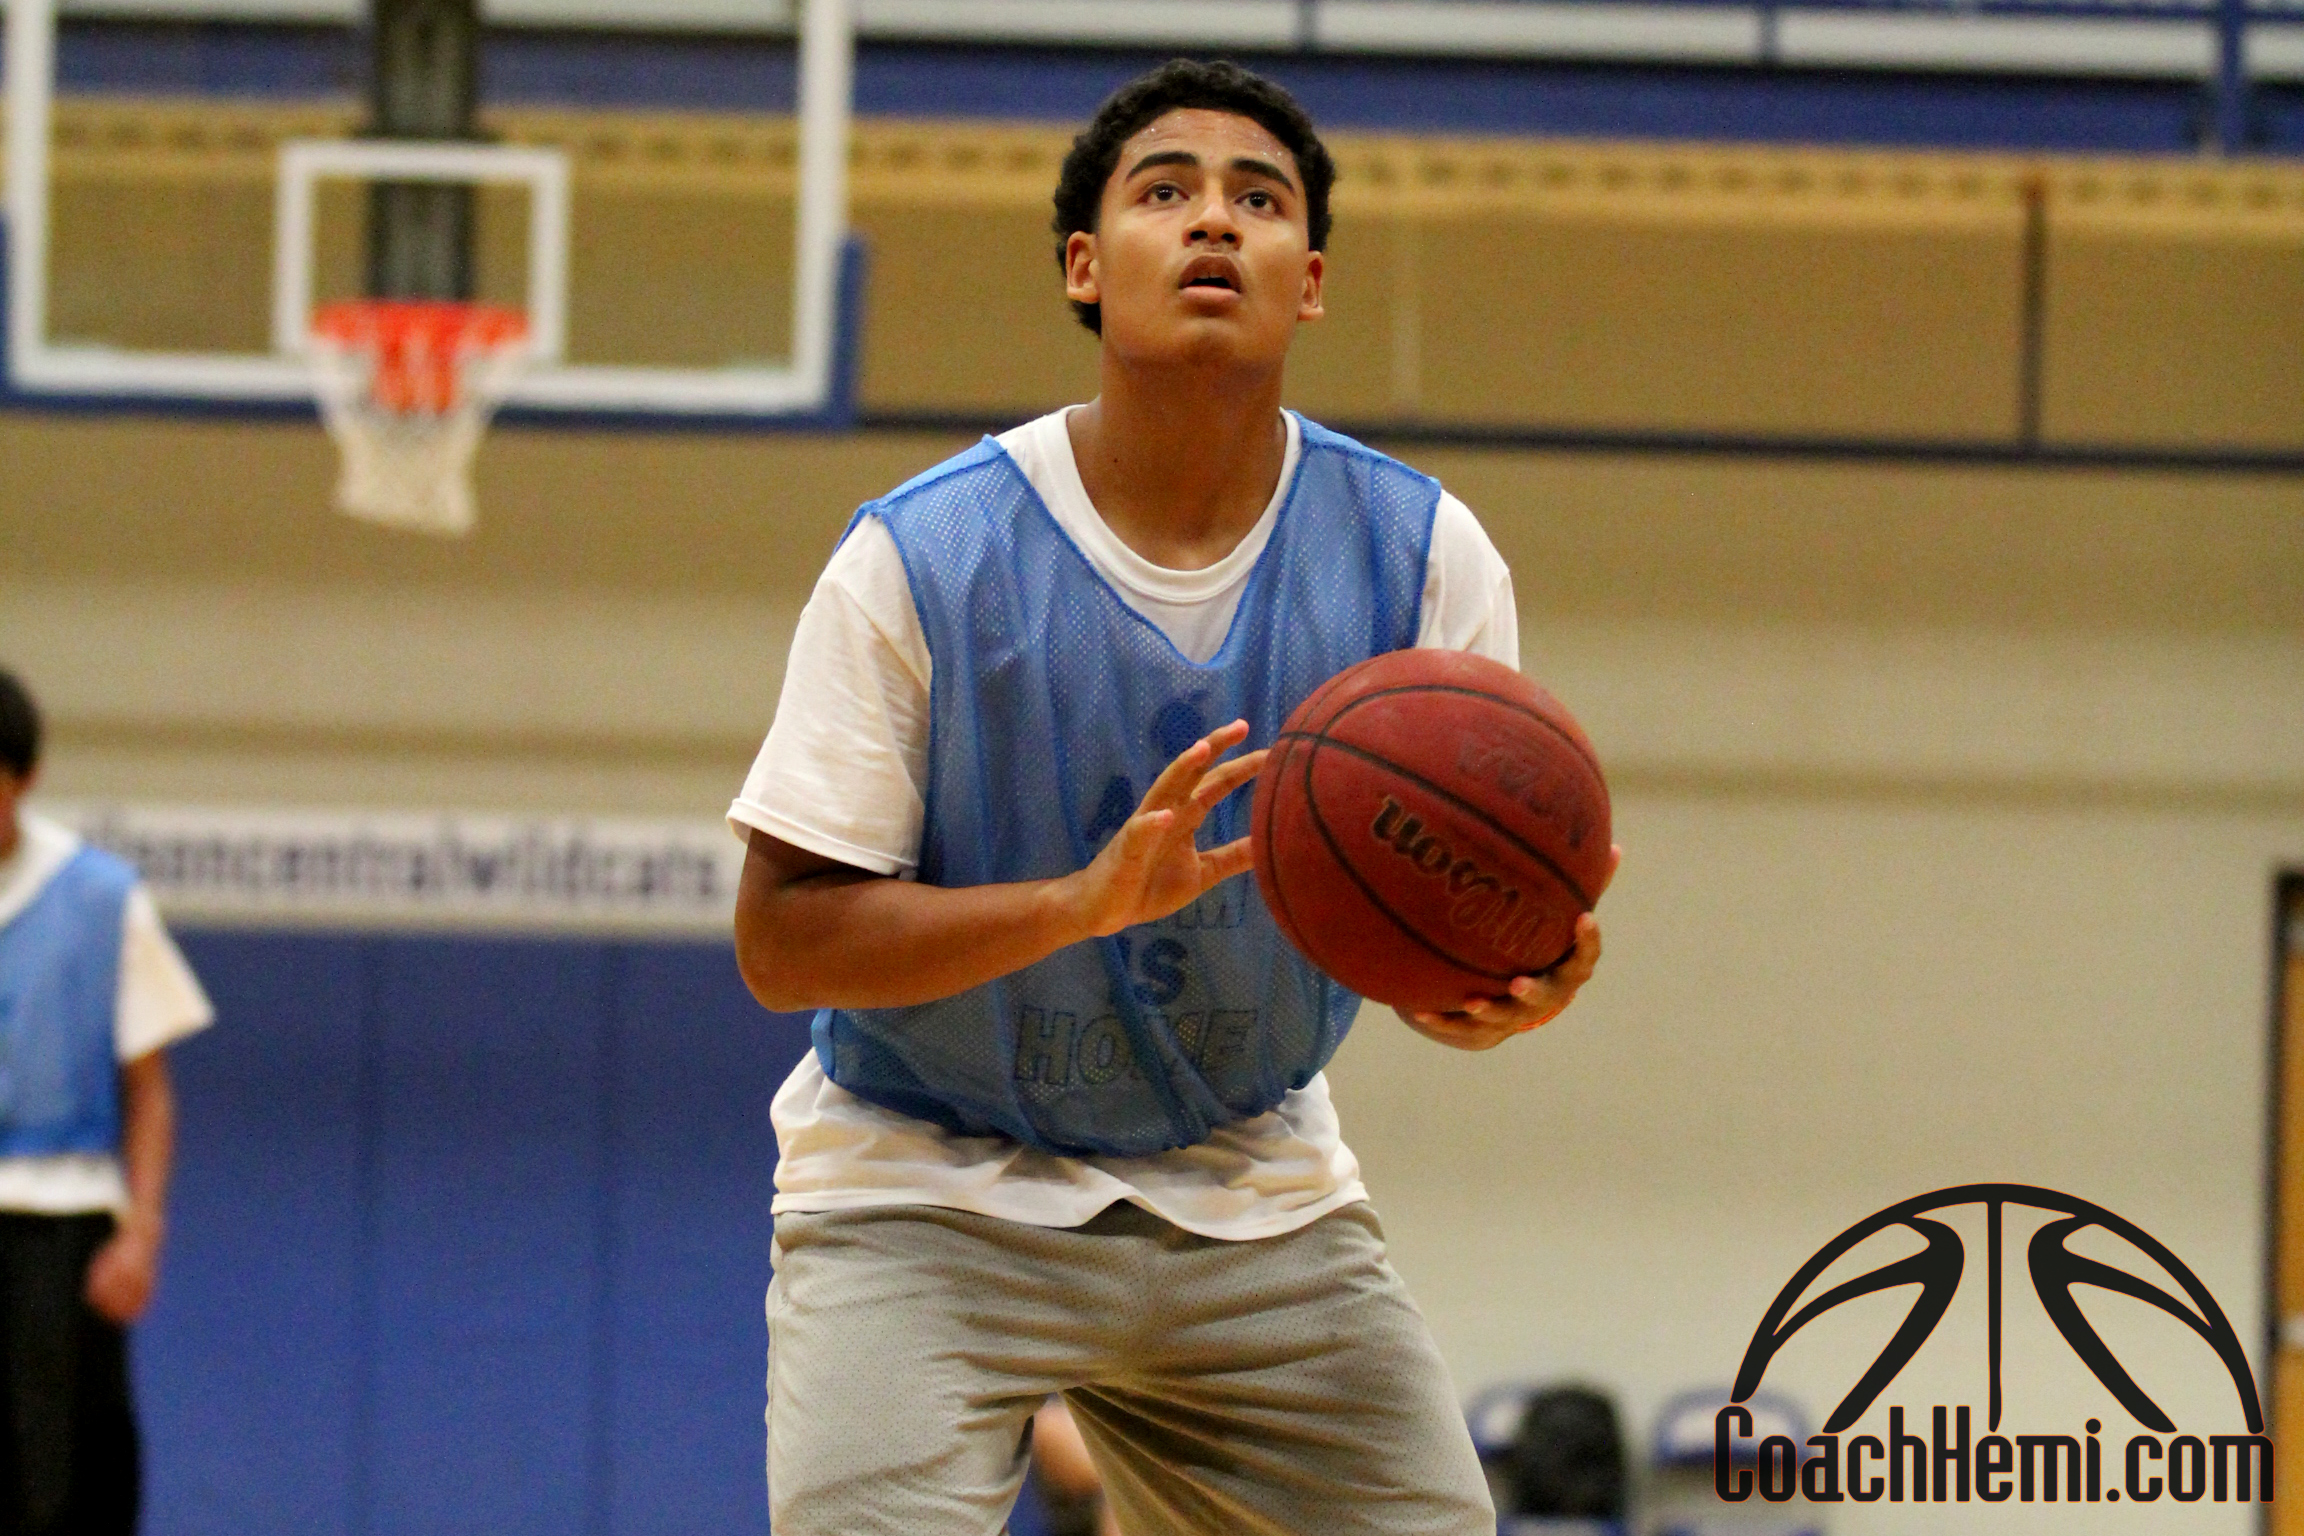 #OTRHoopsReport: Coach Hemi Fall Workout Player Evaluations - October 13, 2014